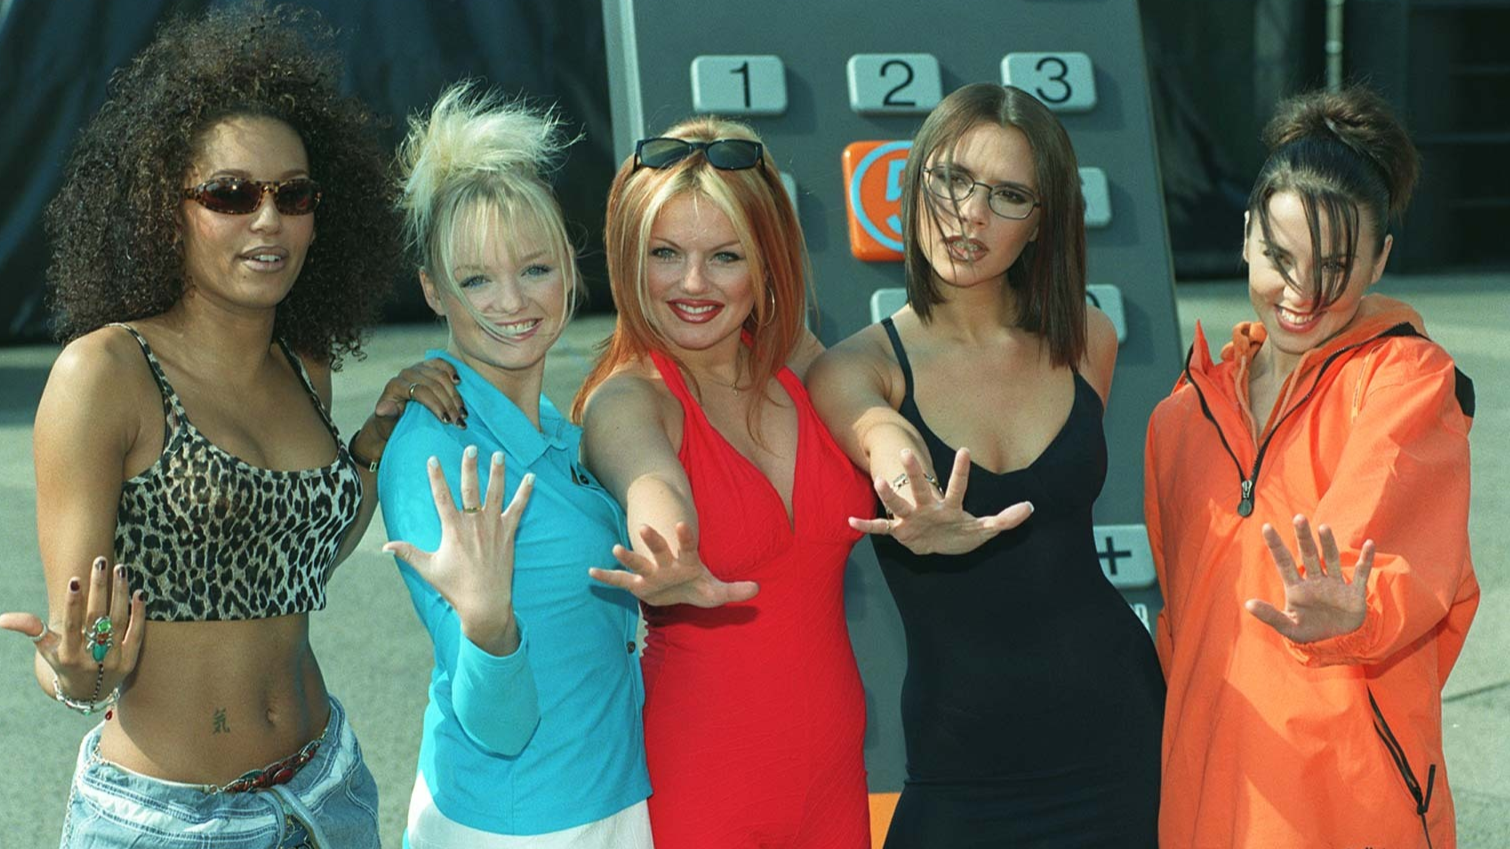 Someone Leaked That Spice Girls Are Going On Jonathan Ross And Twitter Can't Cope